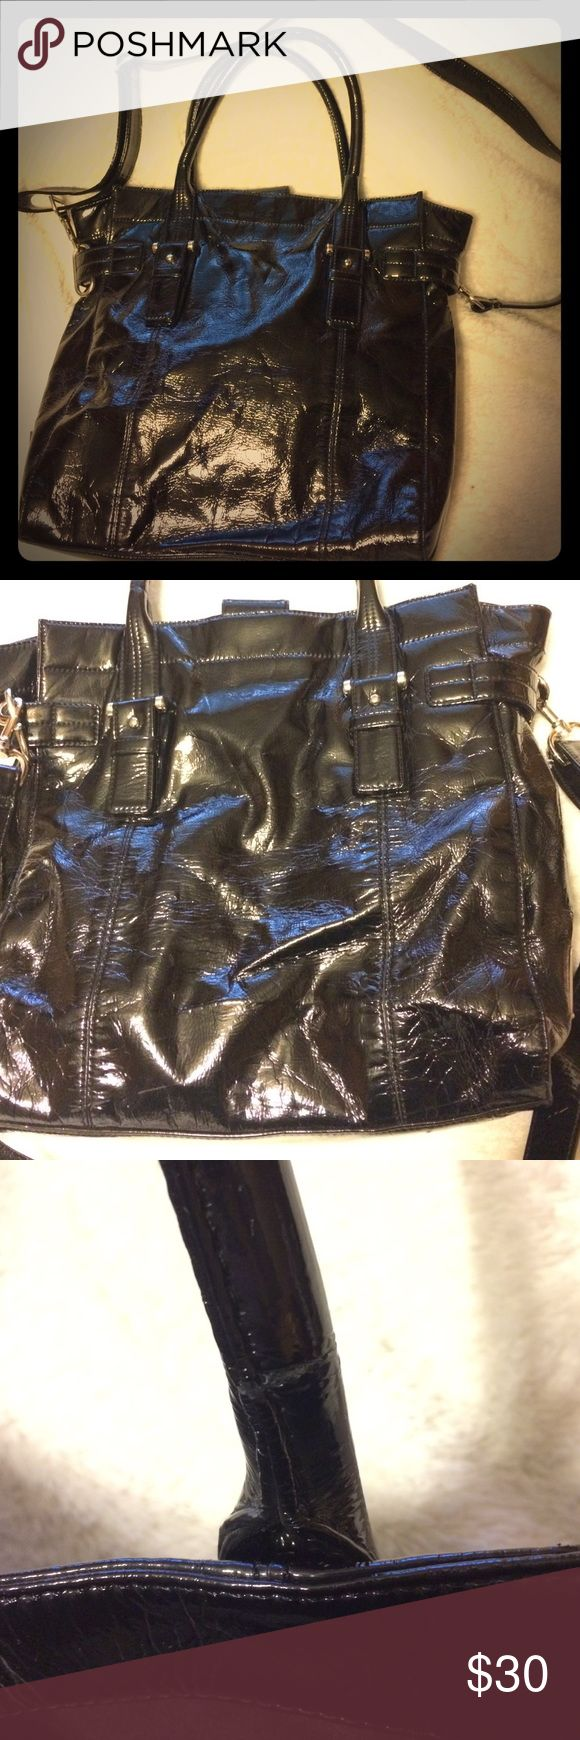 """Anne Klein Big Black Purse This 100% polyurethane purse has been preloved, but is still in great condition!  The only wrong with this bag is that the tubes in short handles have cracked, & so the handles are just starting to tear. The long adjustable strap is like new & so is the rest of the bag.  There are one or two tiny scuffs, but that's about it. It's a huge bag. The dimensions are 14"""" x 13 1/2"""" x 4"""" with short straps measuring 18"""" & long strap measuring about 51"""" fully extended…"""